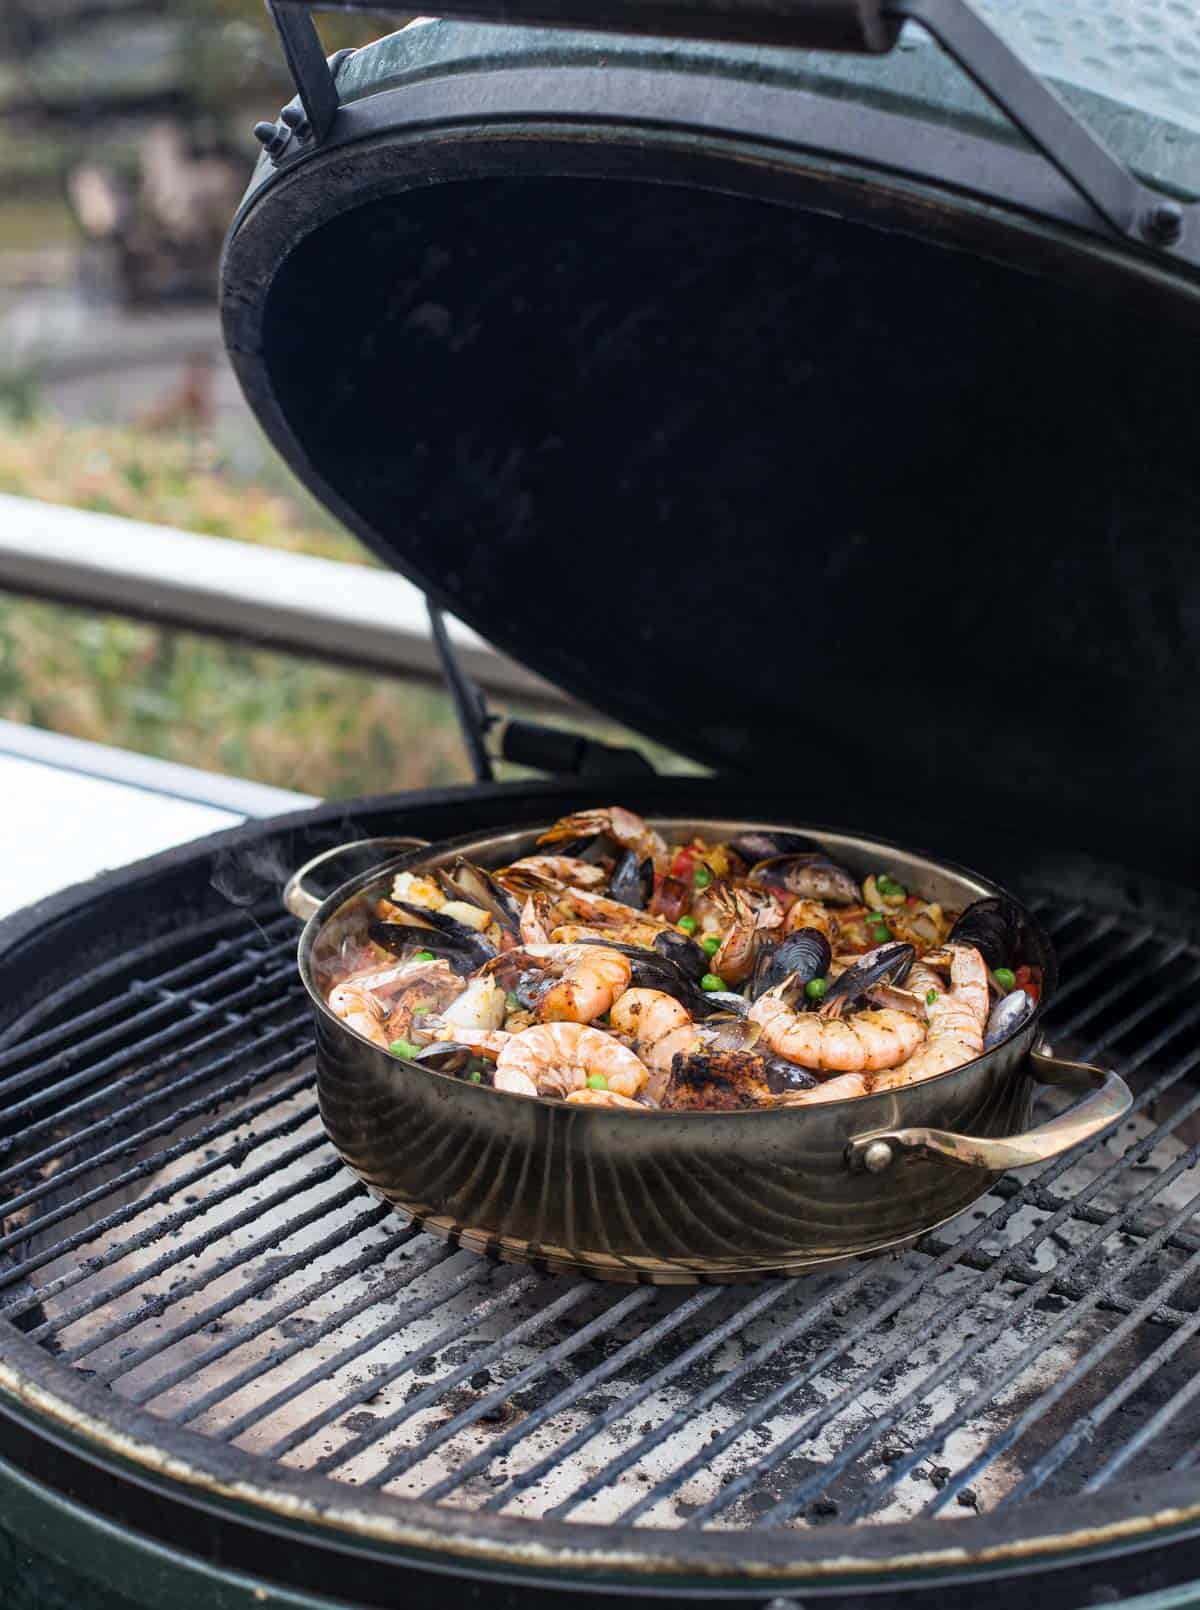 A pot of paella cooking on the grill